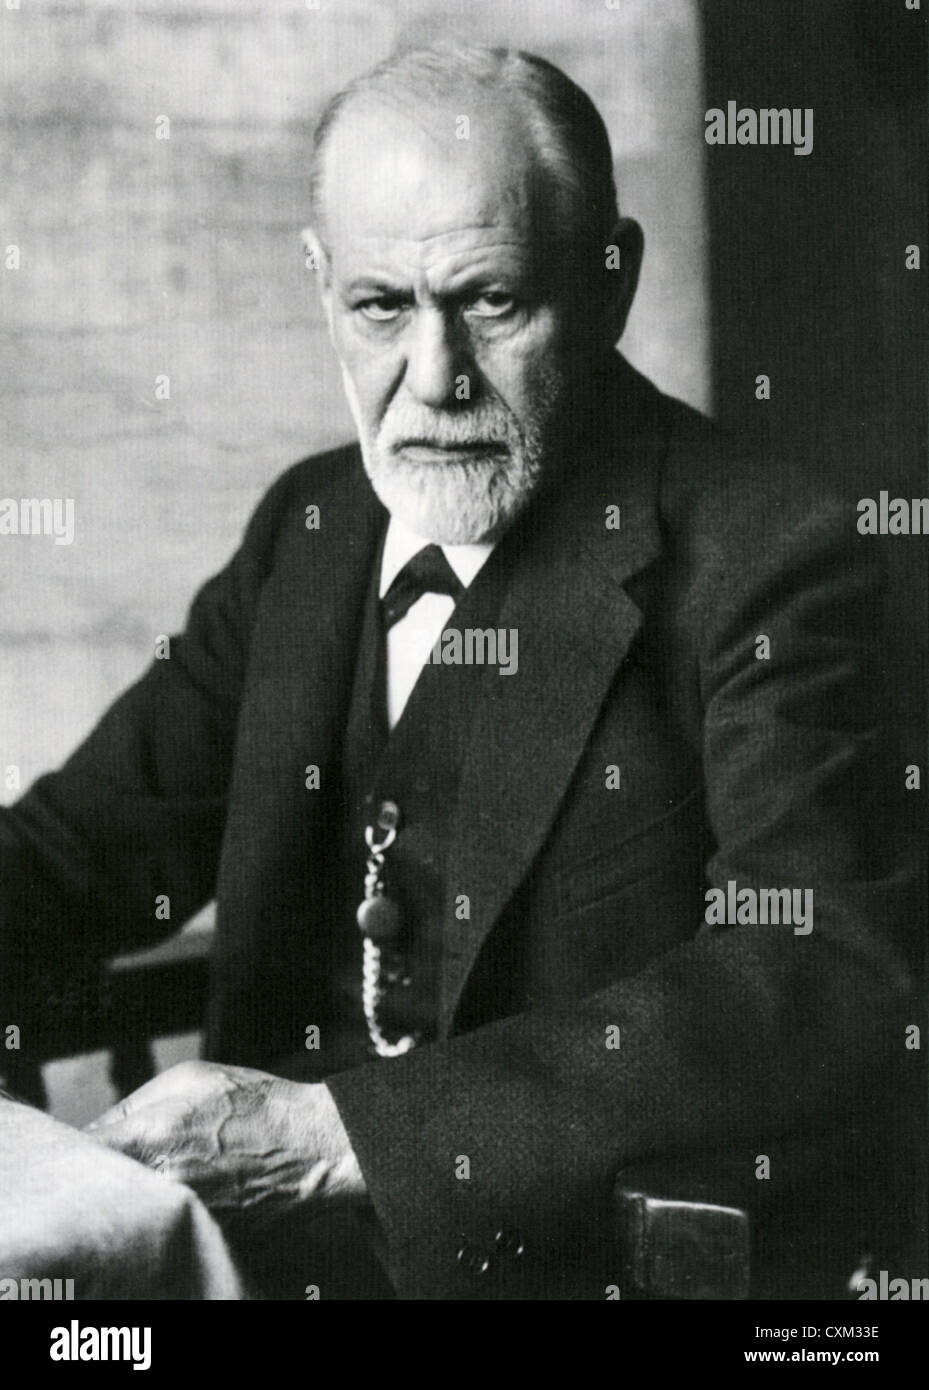 SIGMUND FREUD  (1856-1939) Austrian neurologist and founder of psychoanalysis in 1922 - Stock Image